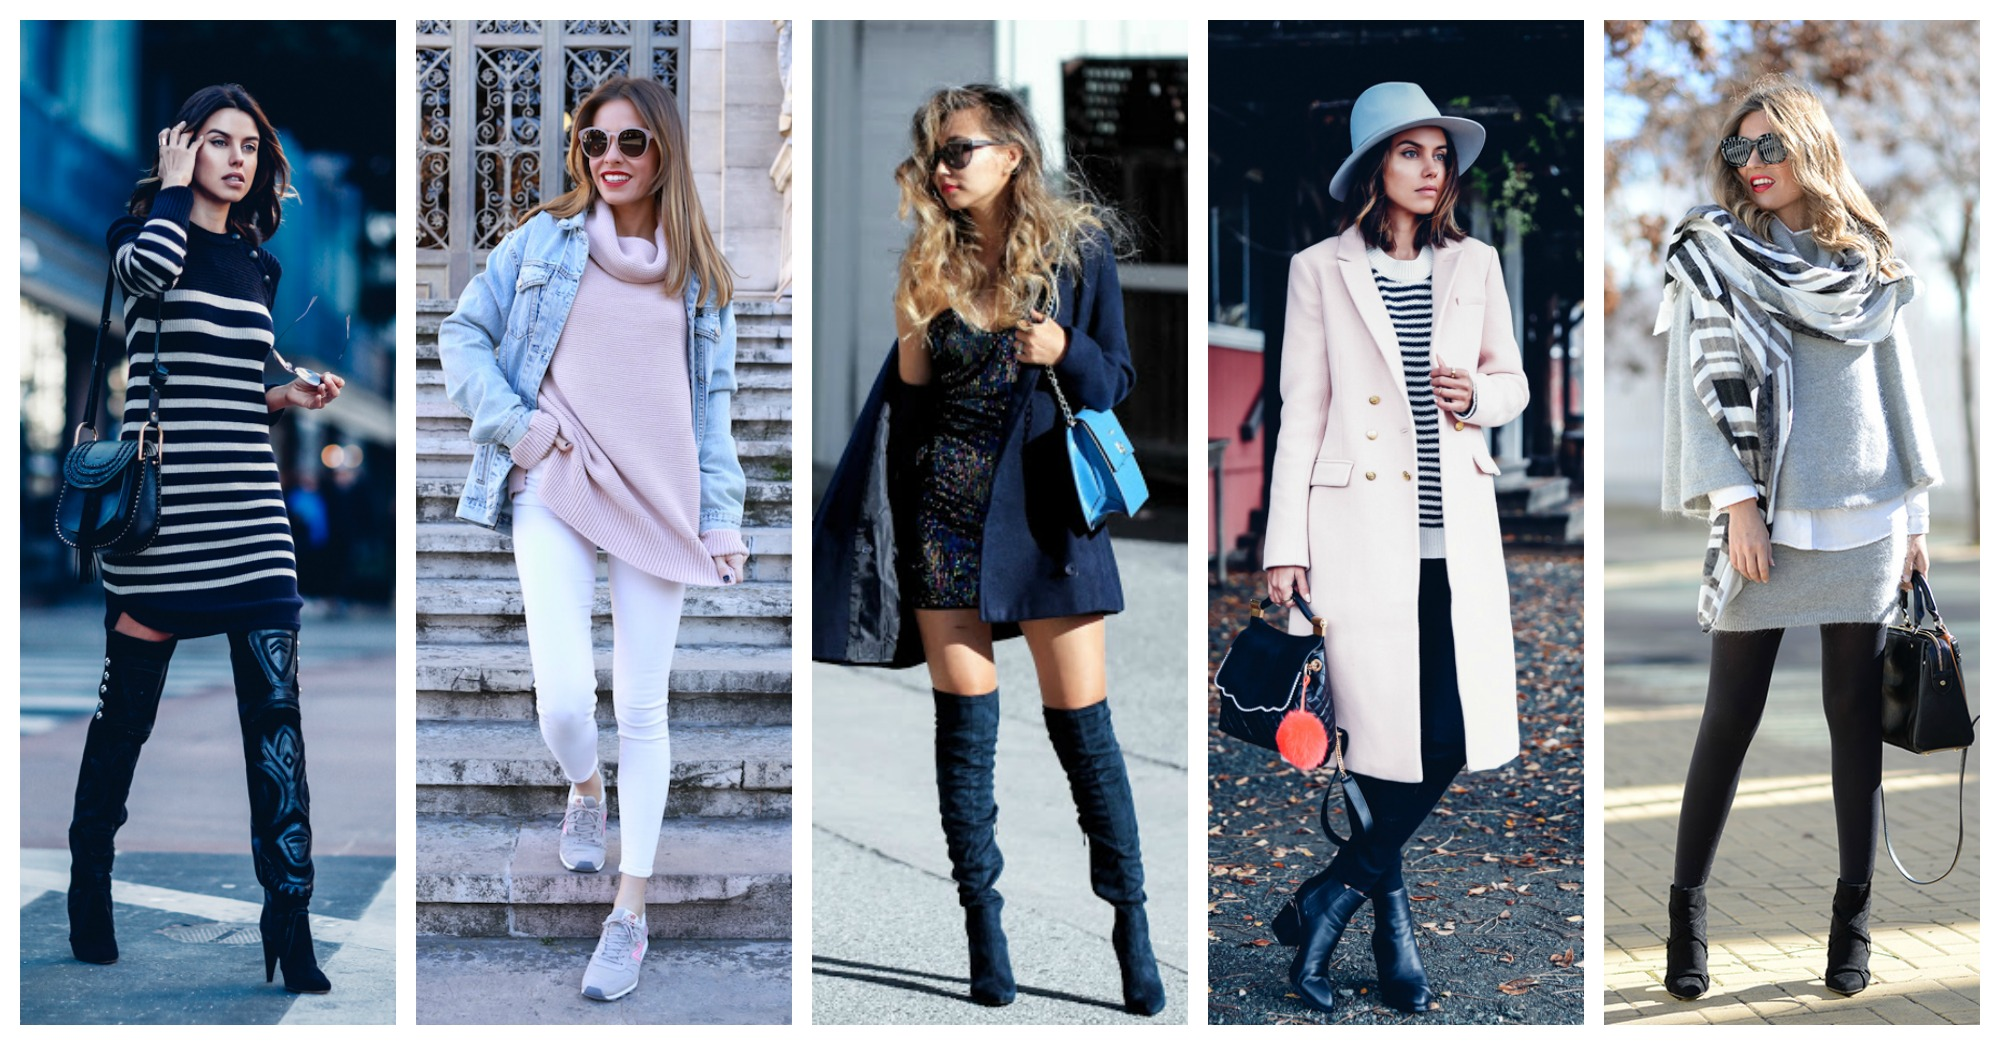 Stylish Outfits to Wear This Winter